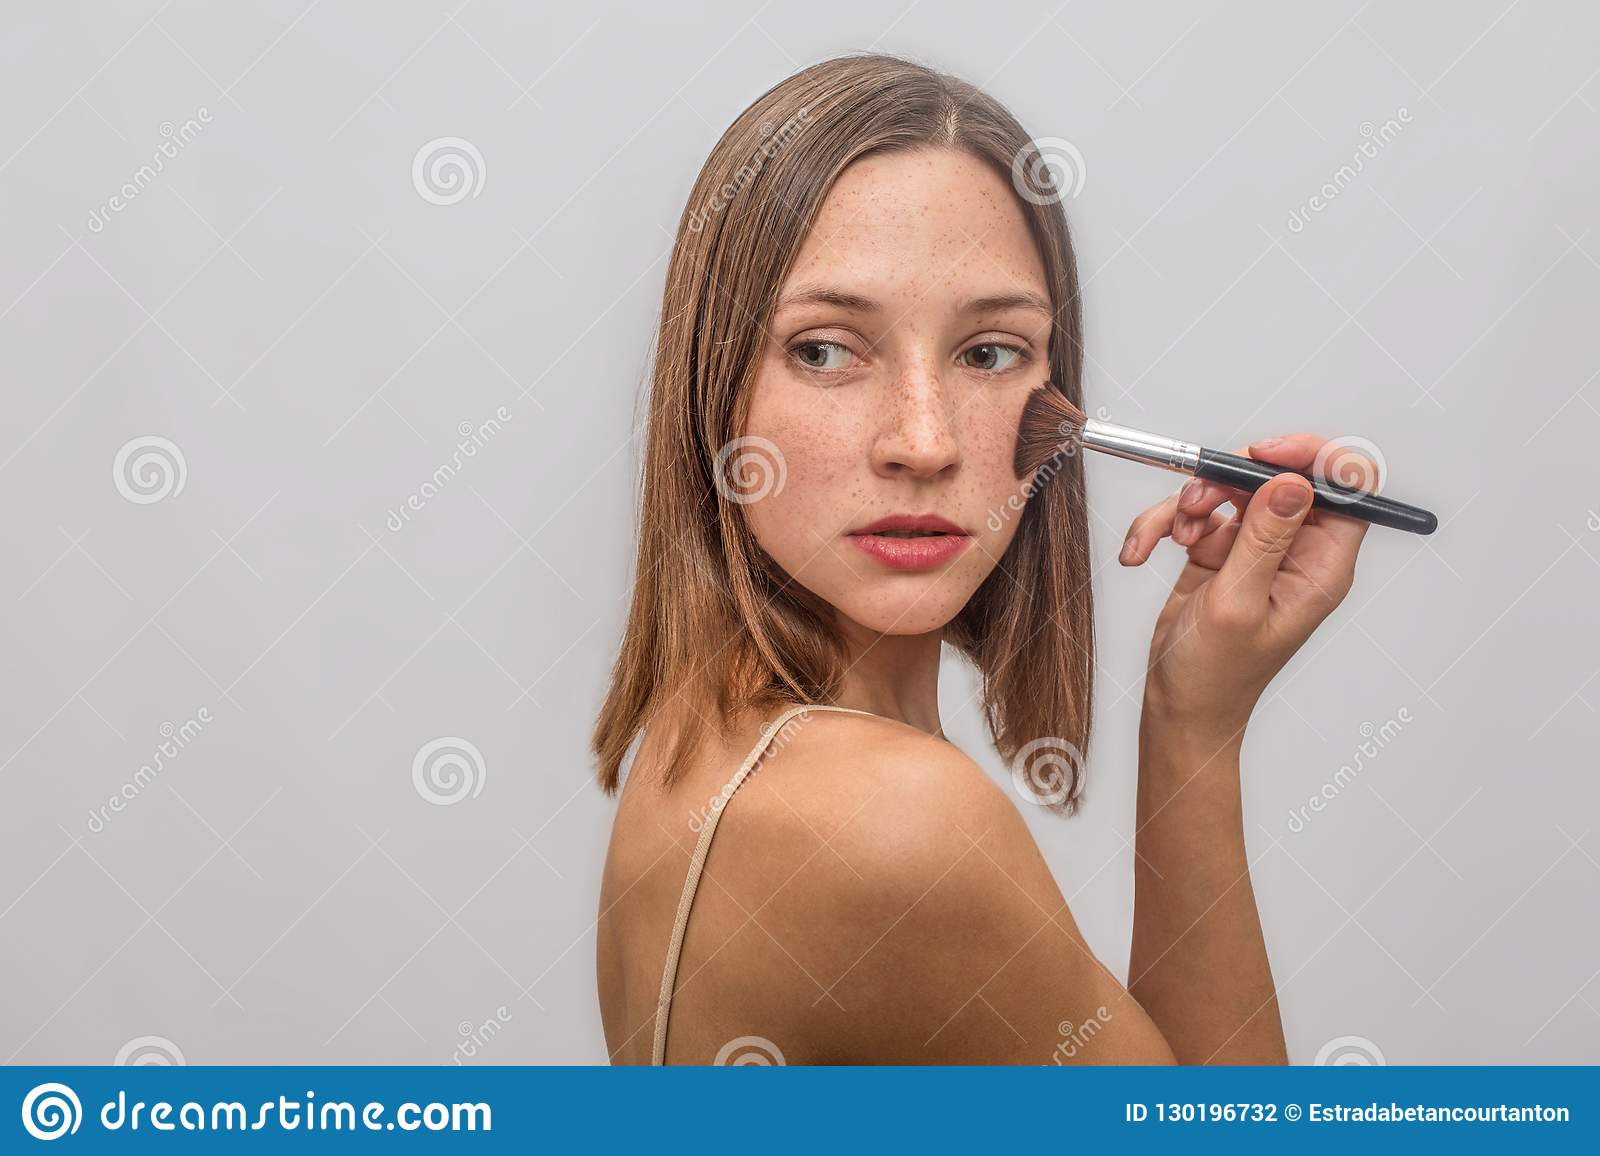 Beautiful and nice young woman stands and poses. She puts make up with brush on her chicks. She looks to left and turns